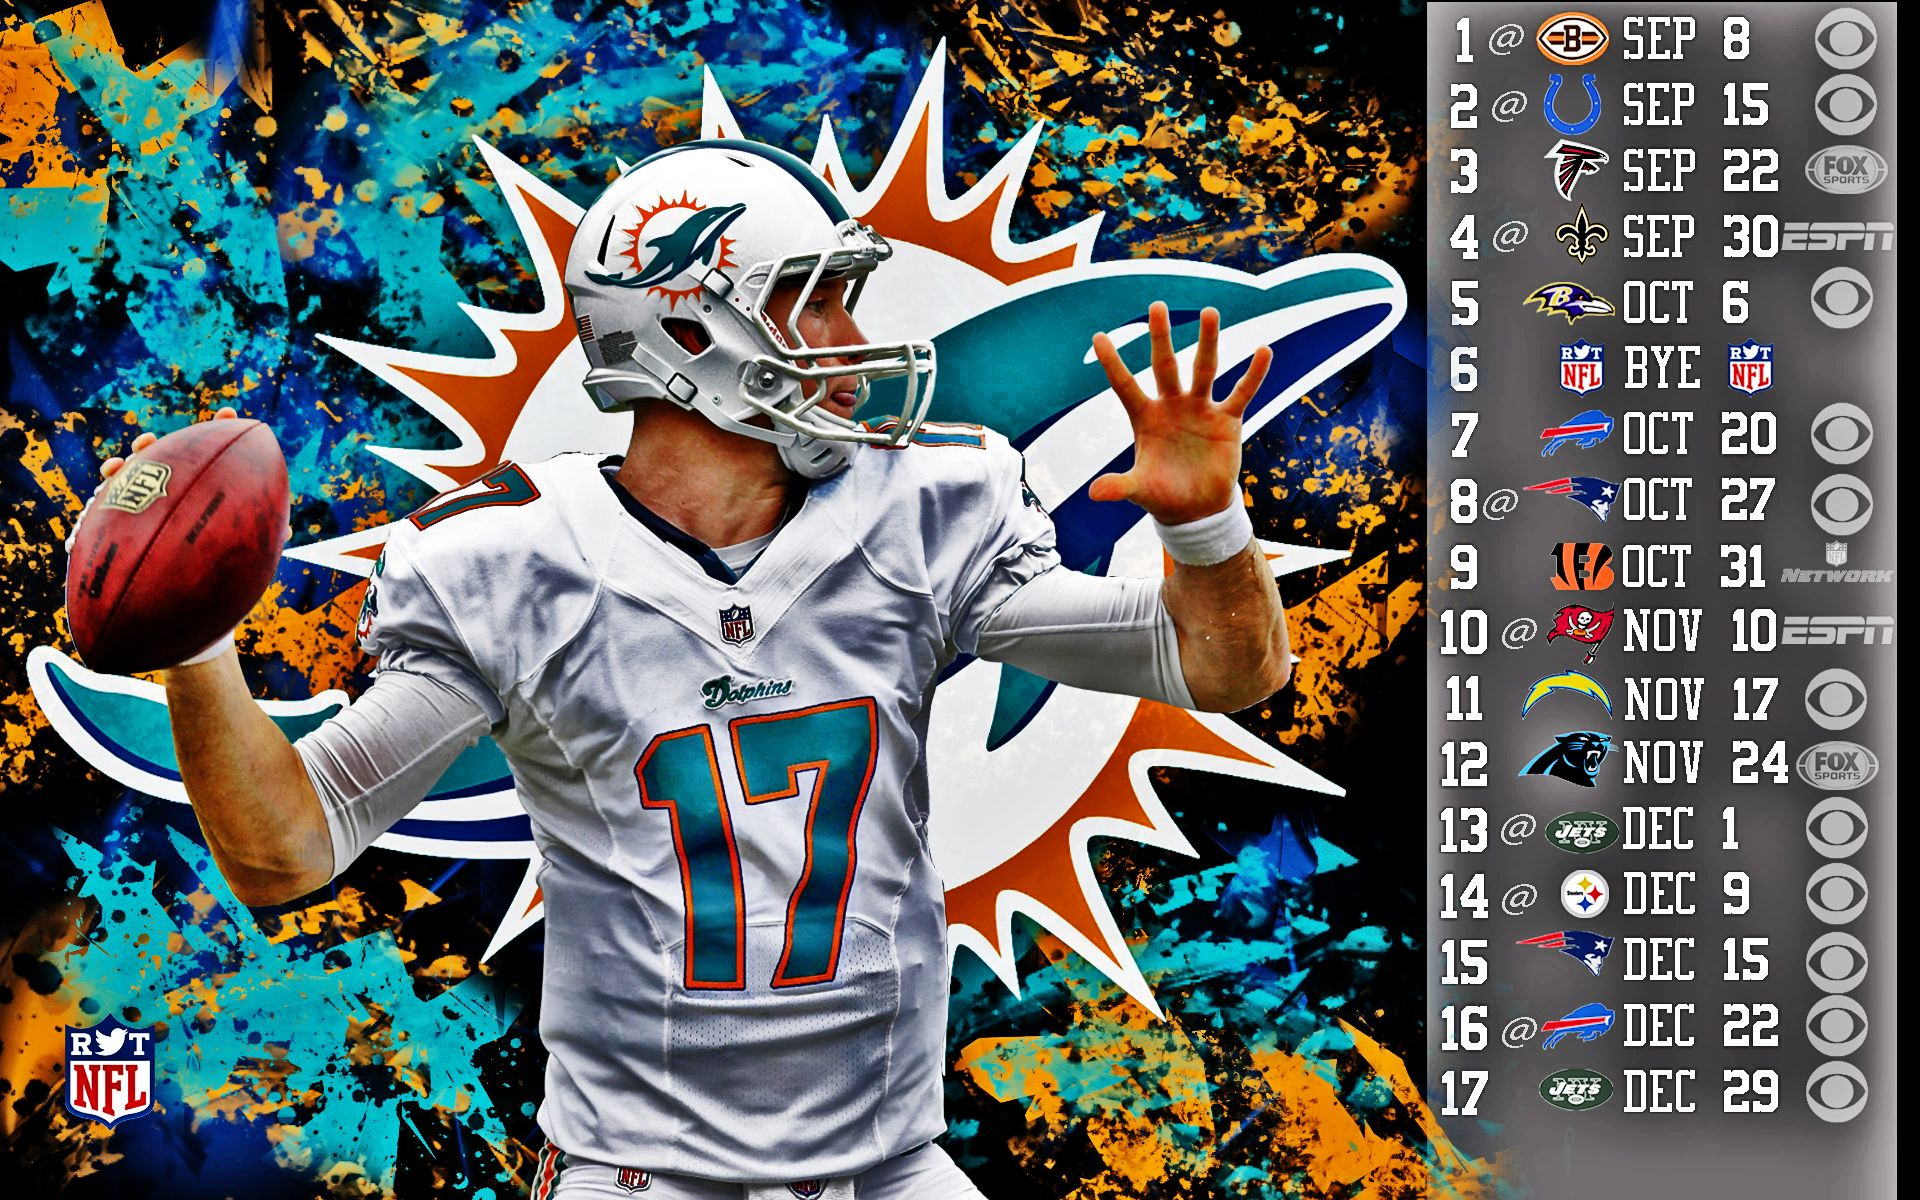 Pin by Dan Matacchiero on Miami Dolphins Dolphins